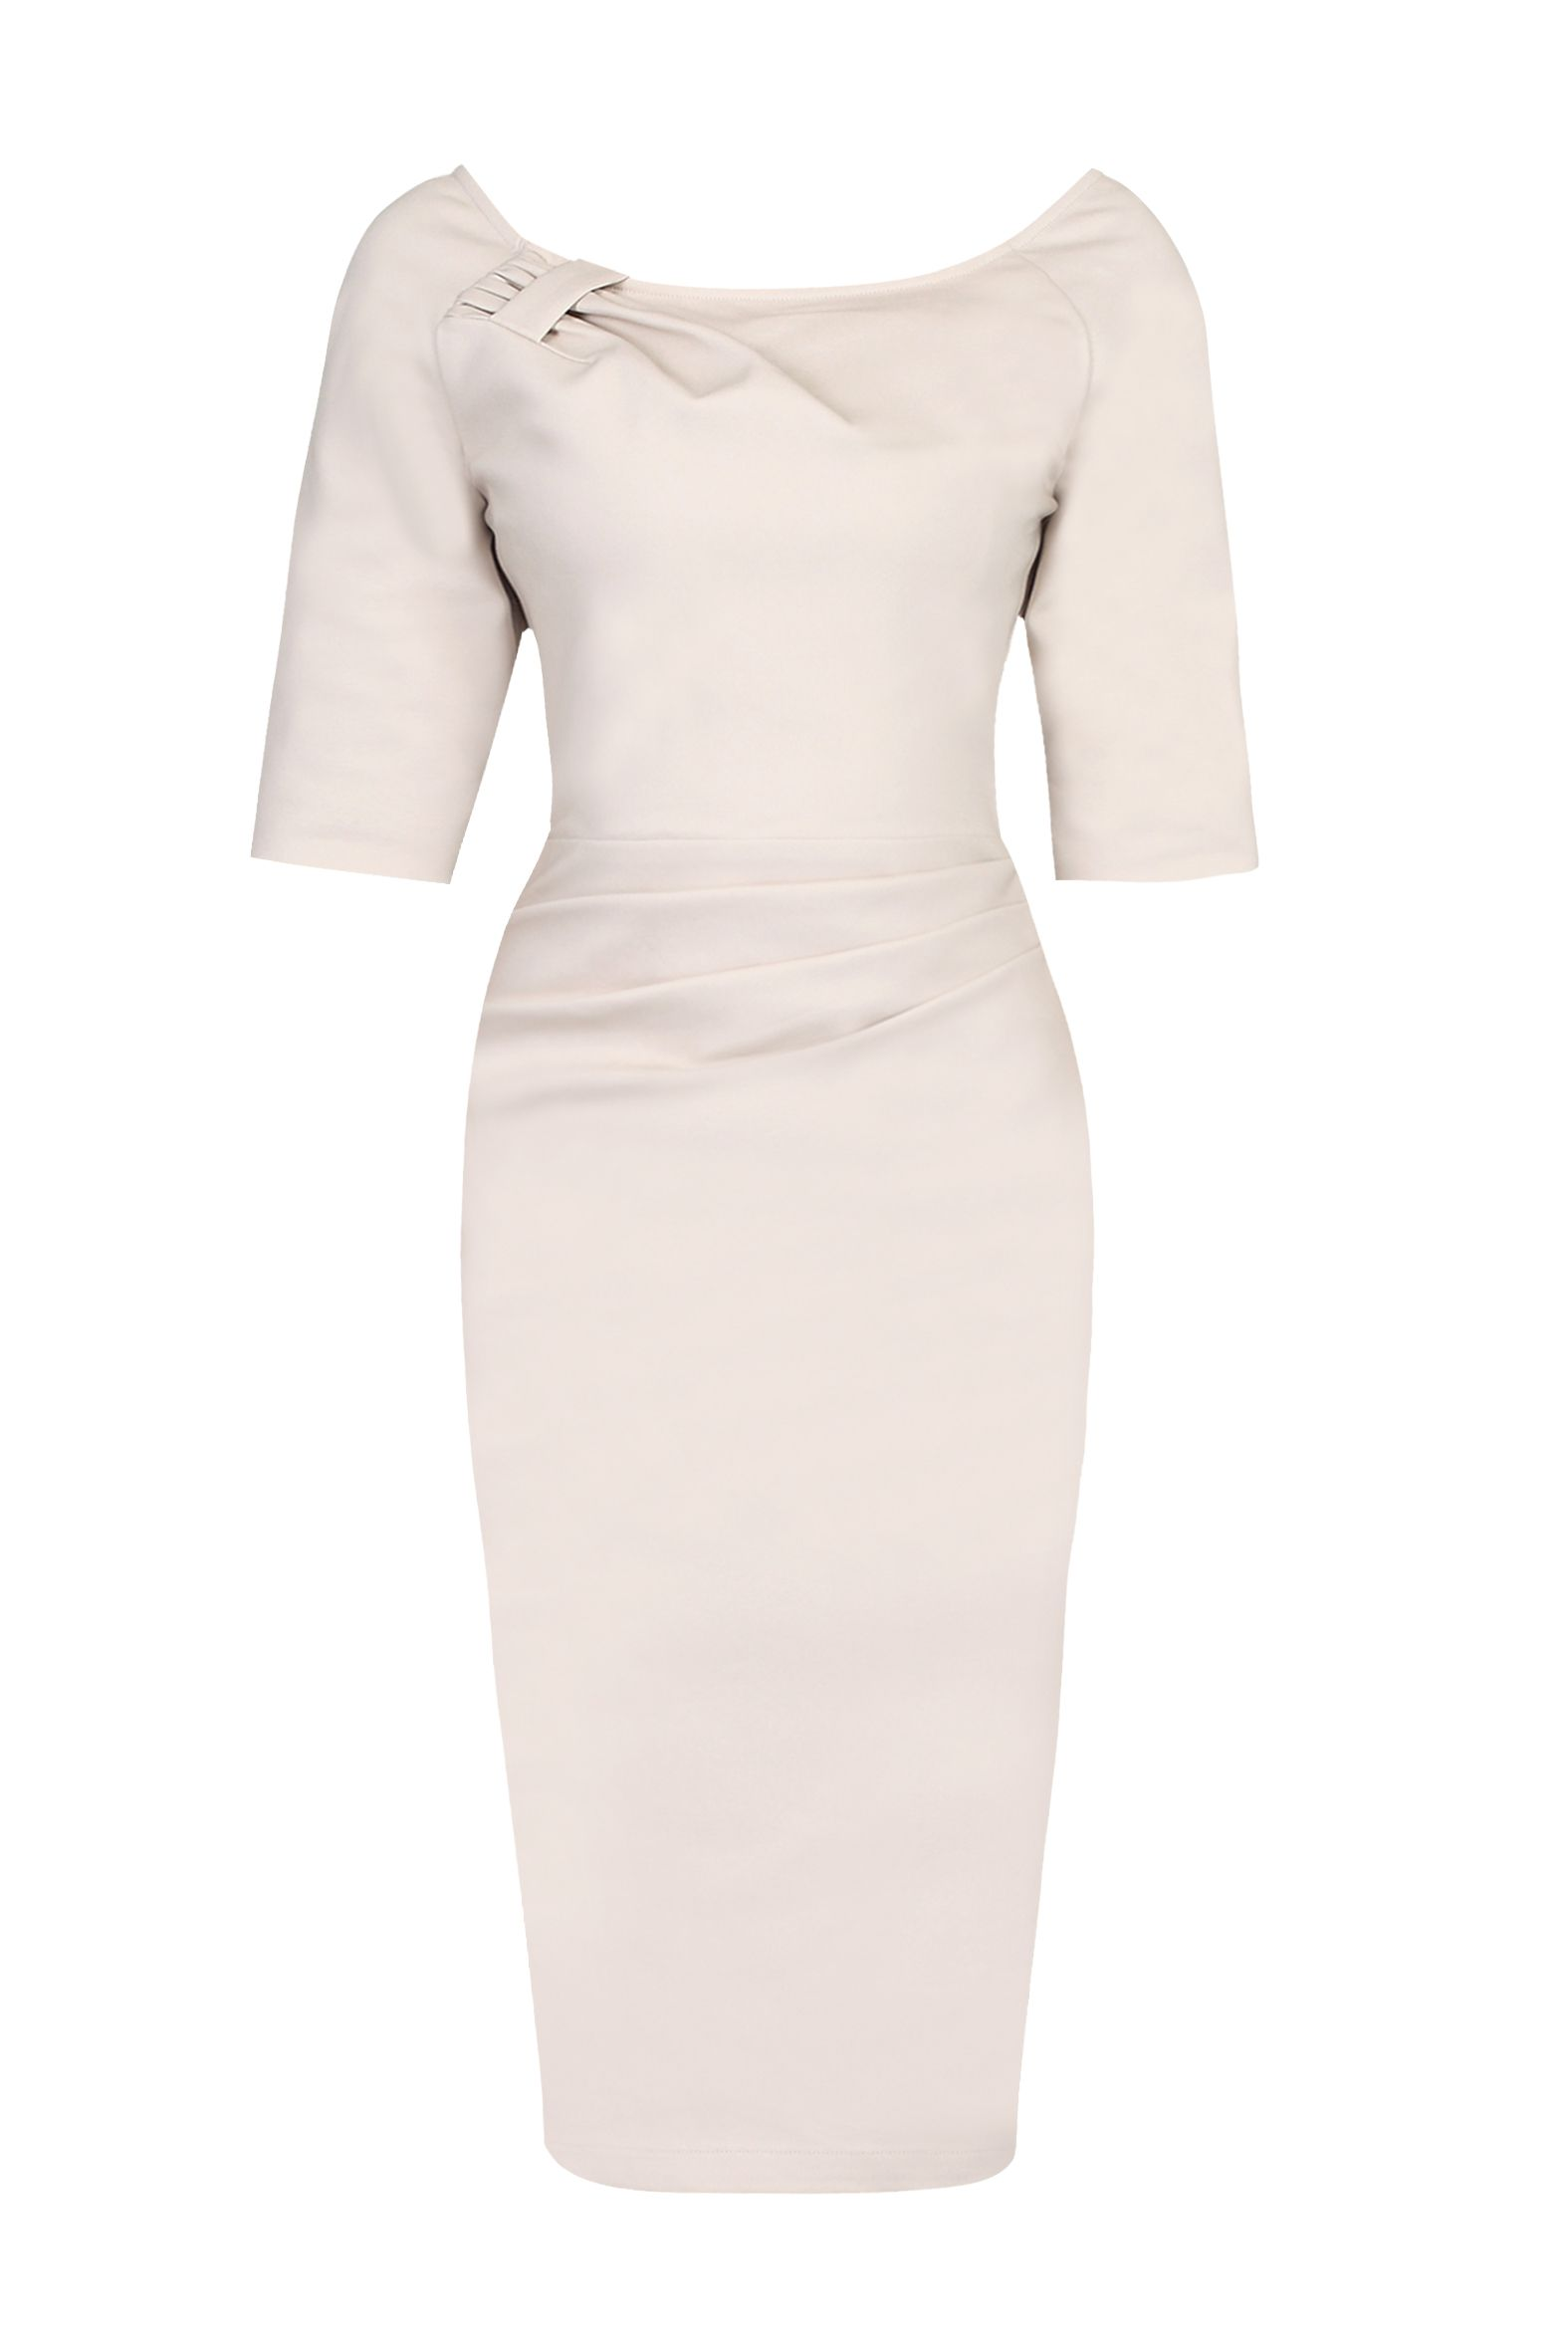 Jolie Moi 12 Sleeve Ruched Wiggle Dress, White